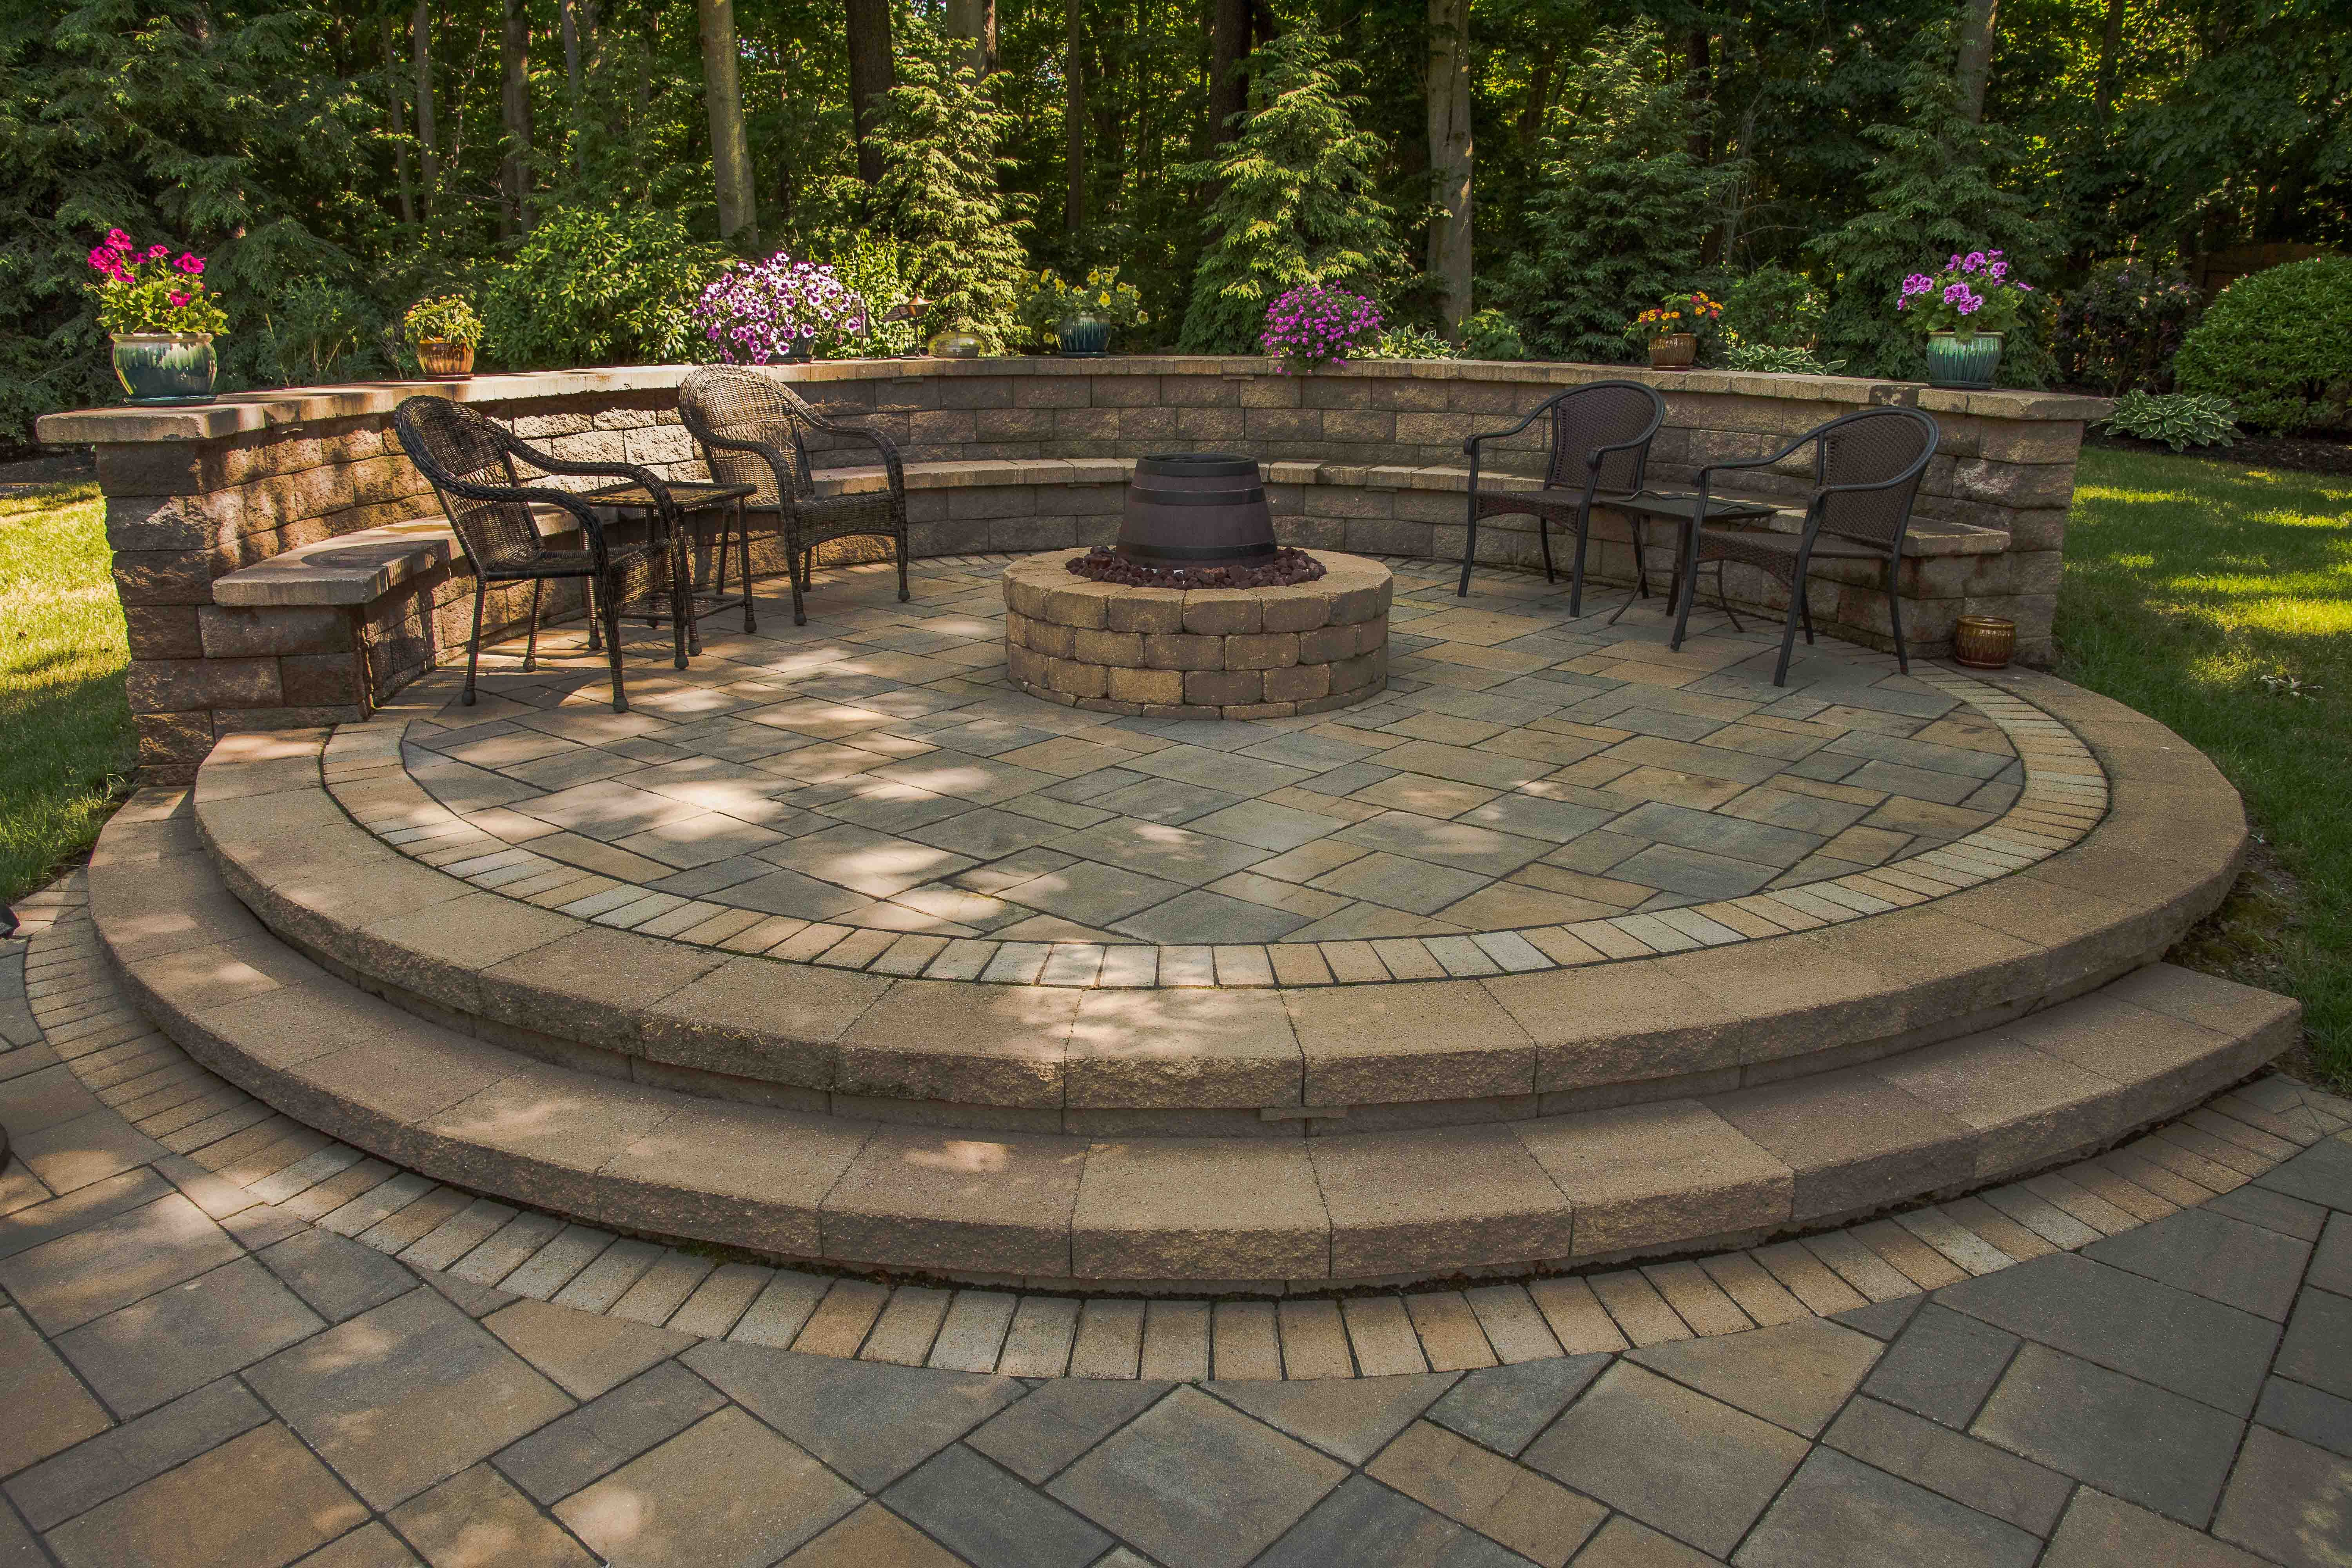 Raised Paver Patio Gas Fire Pit Sitting Wall With Backrest with regard to size 6000 X 4000